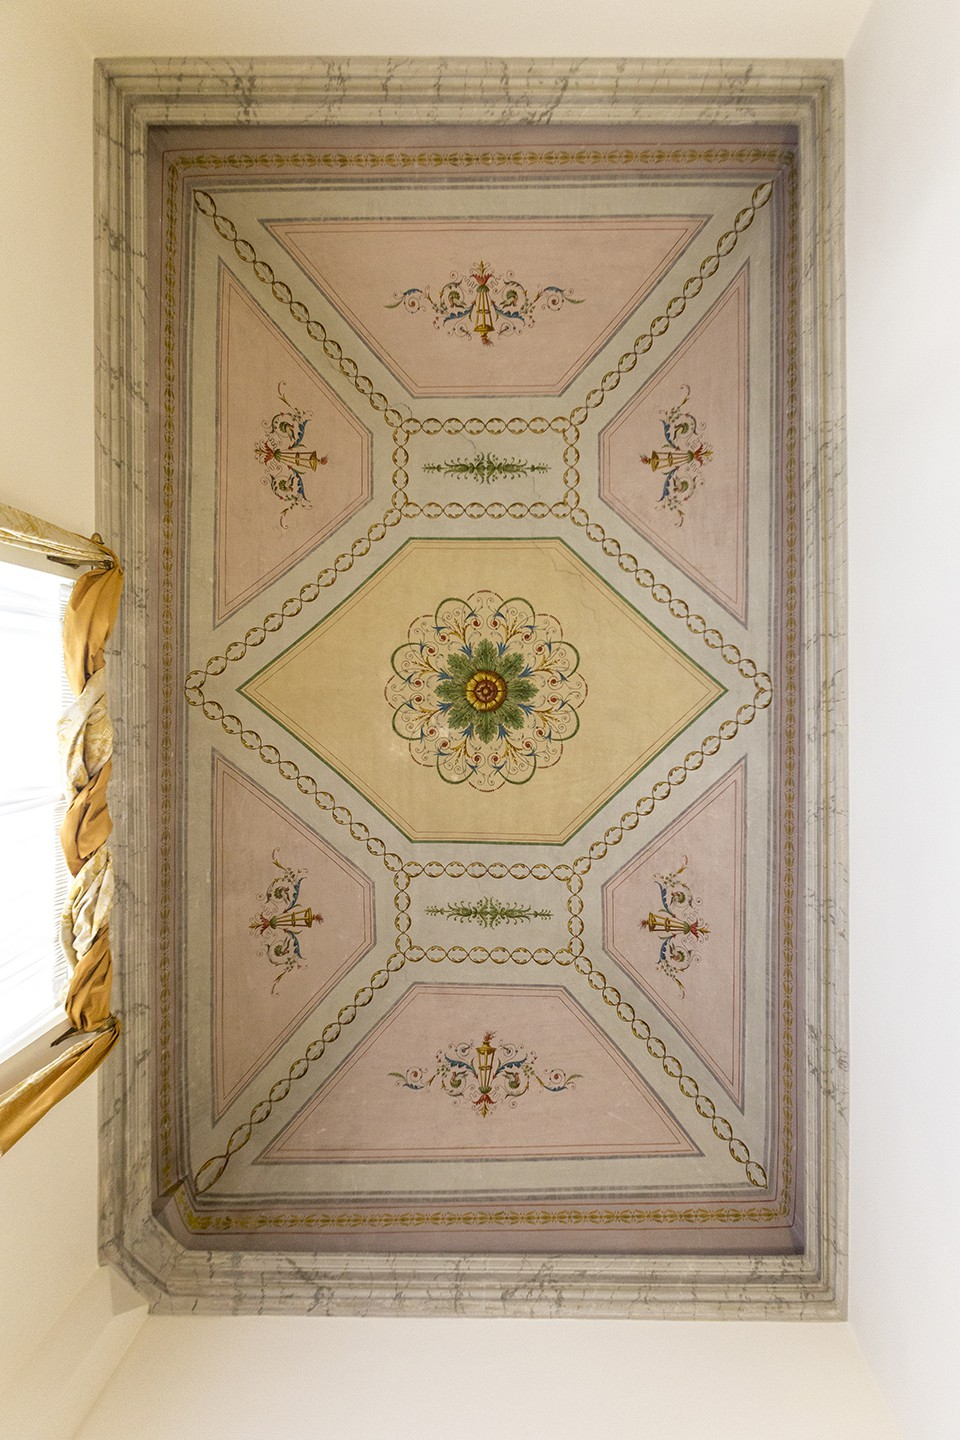 Hotel-Eitch-Borromini-Rome-fresco-9423